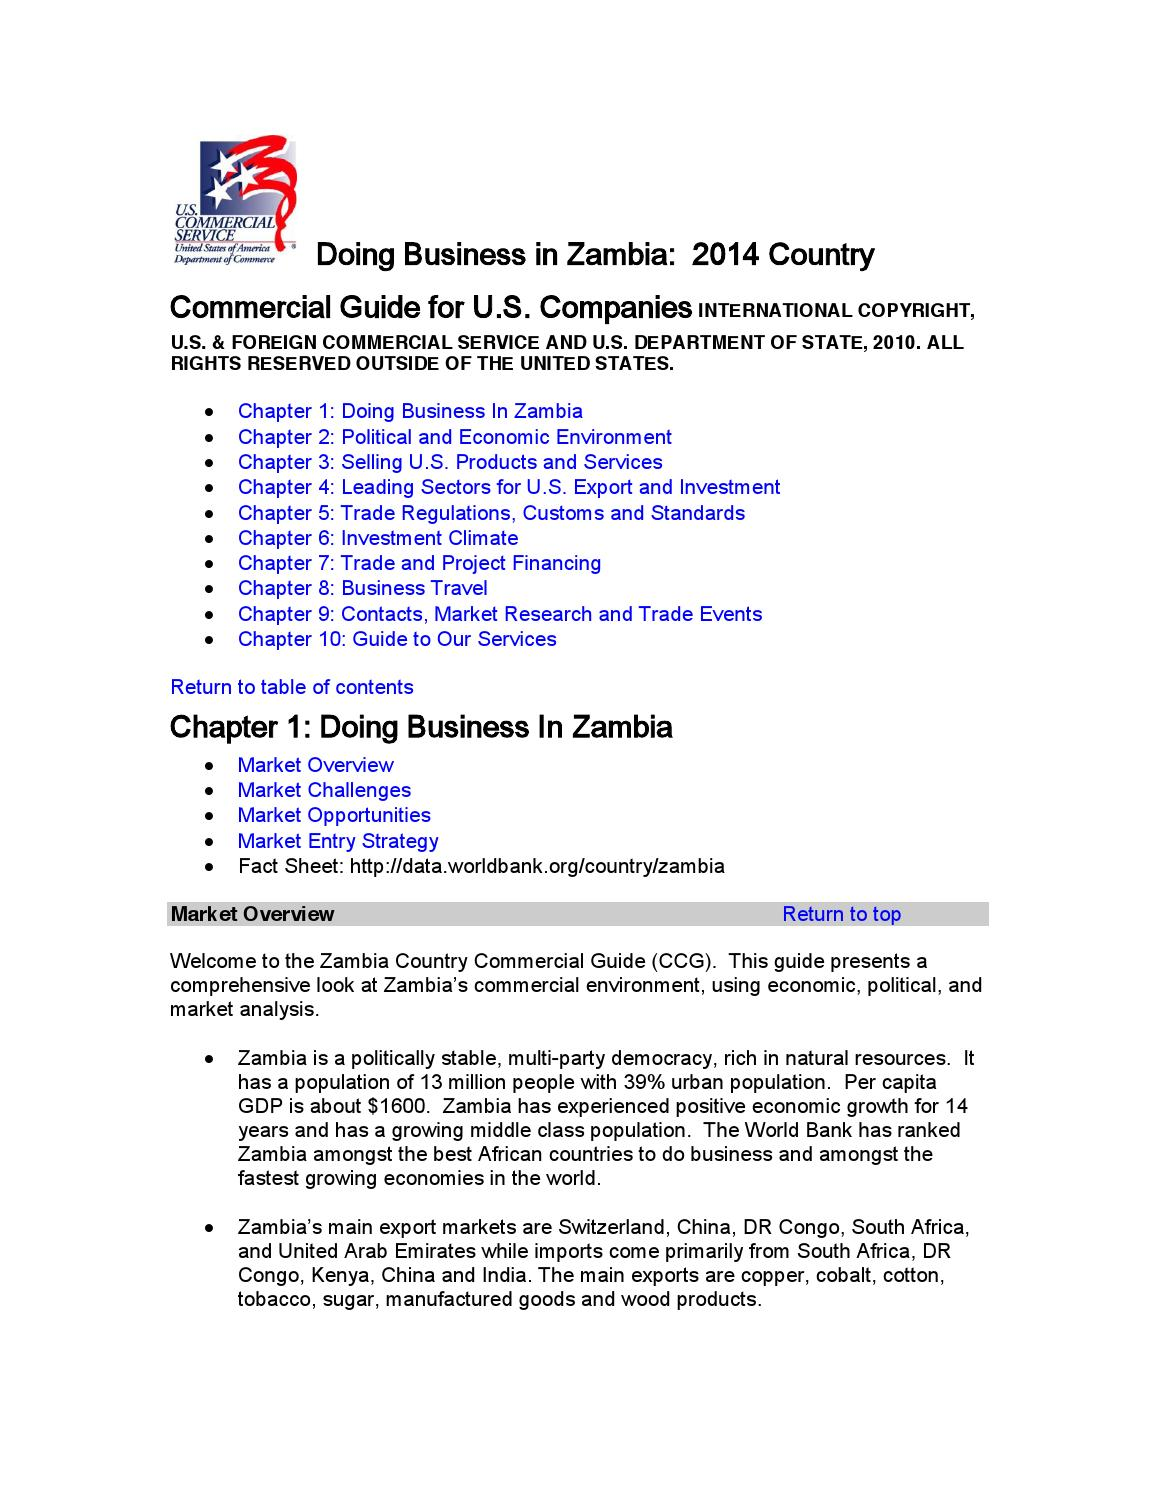 US commercial Services guide 2014 by Consulate of Zambia in